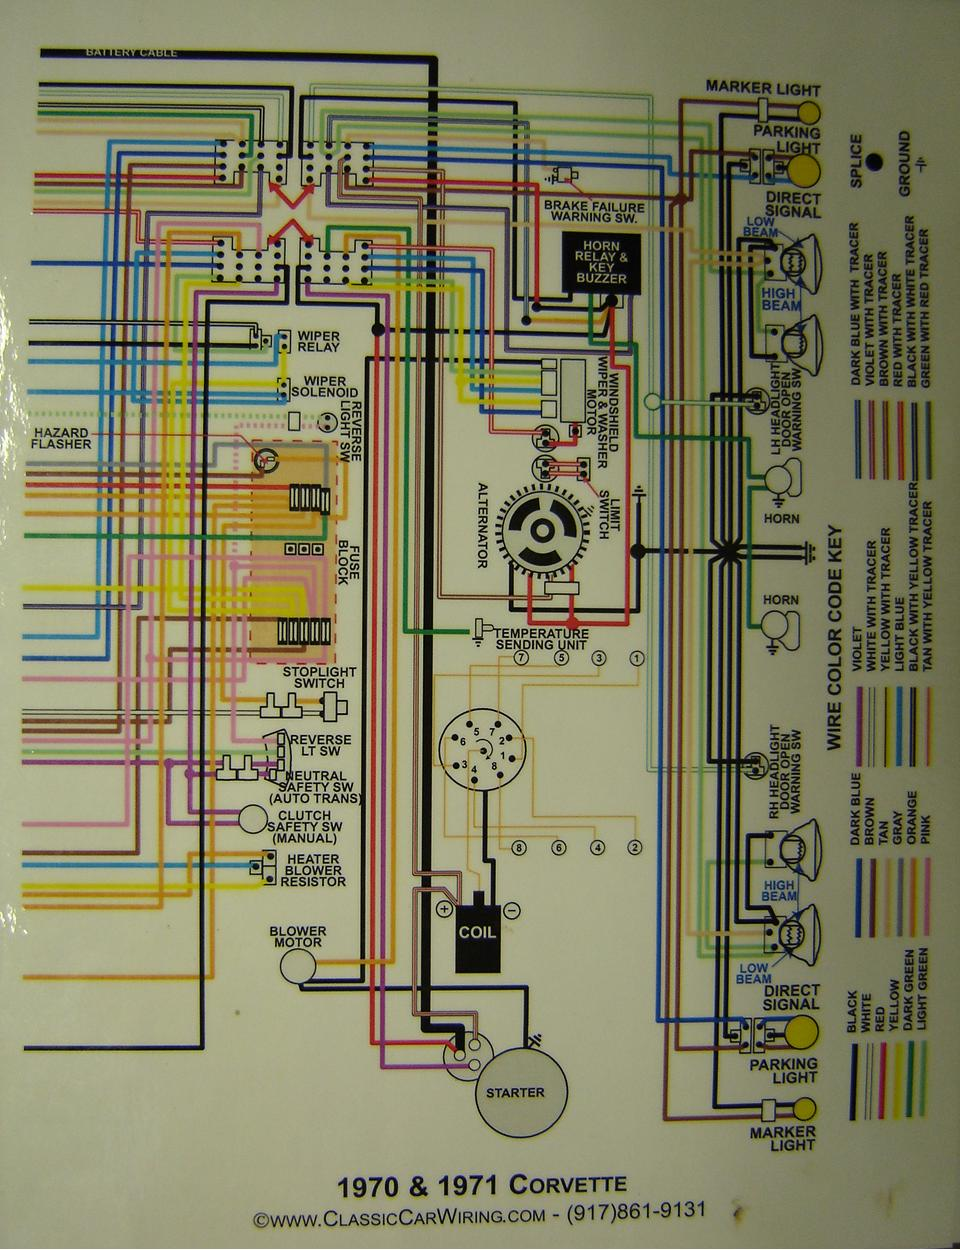 Dodge External Voltage Regulator Kit Wiring Diagram 1970